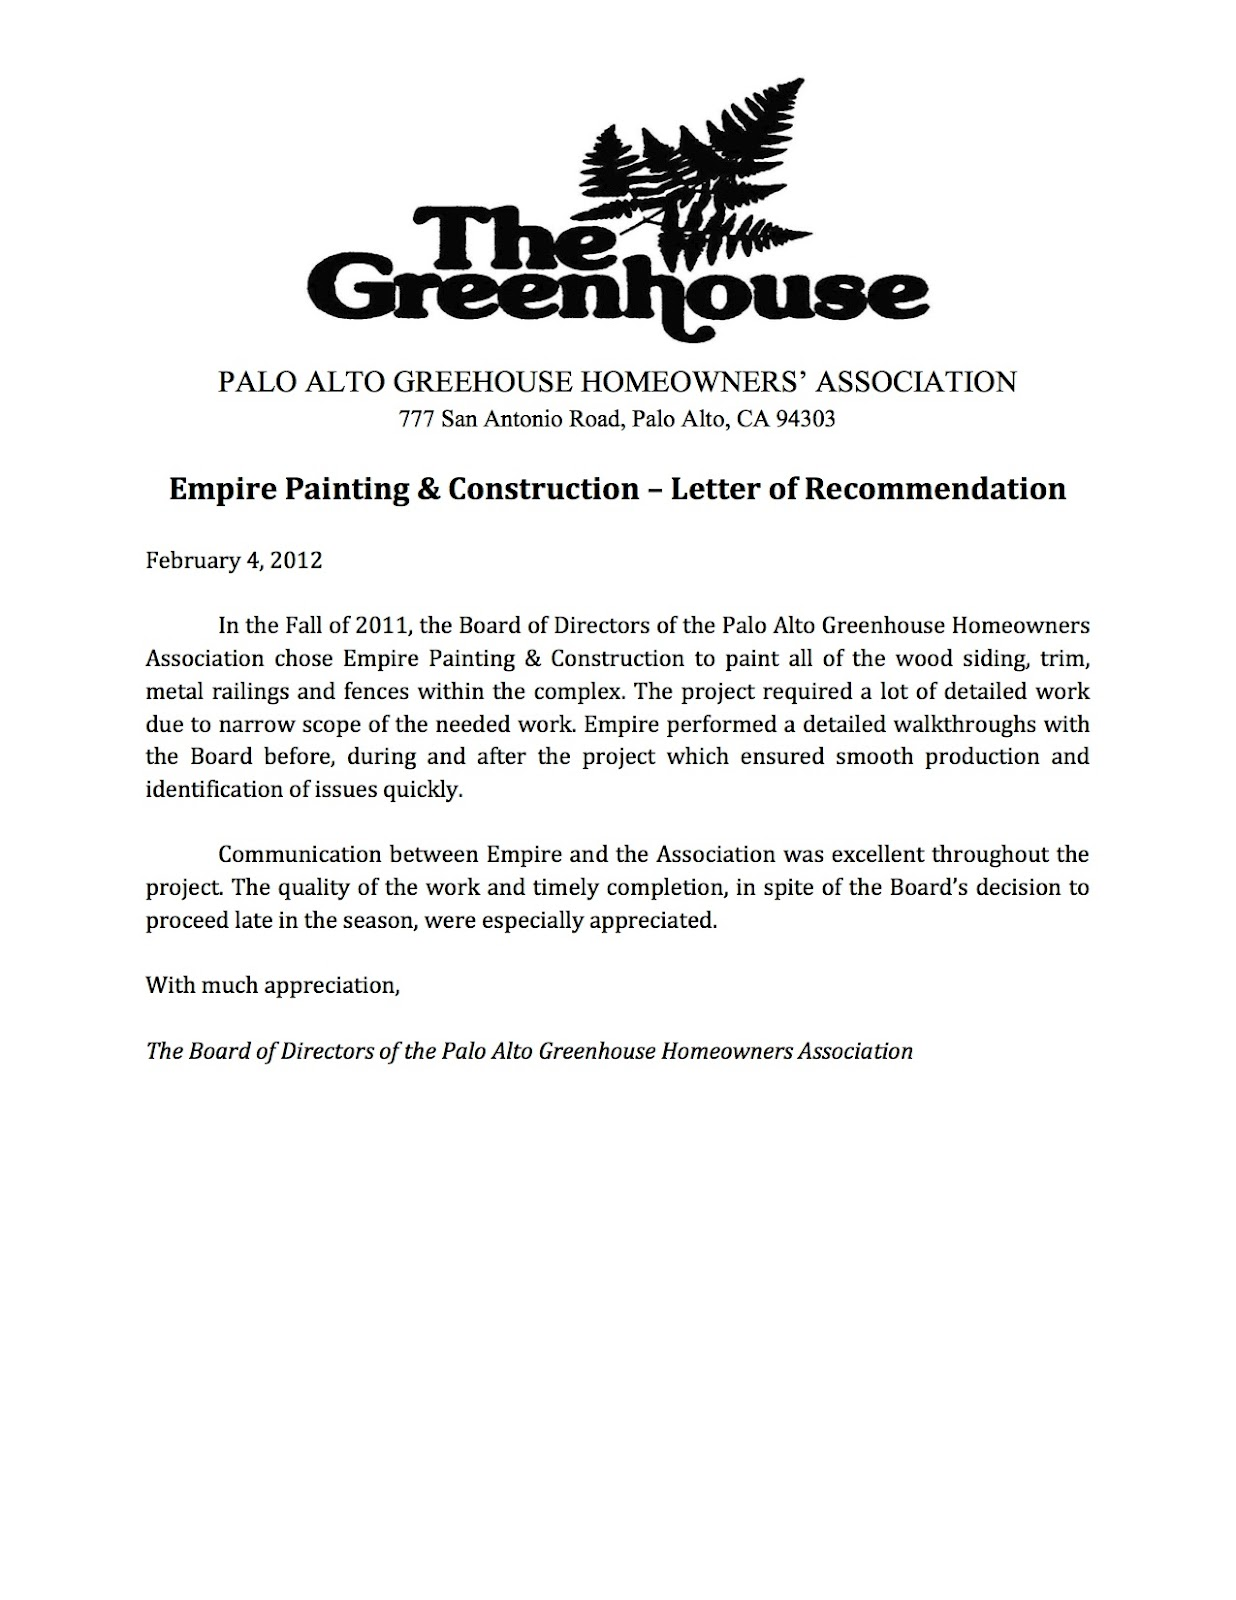 EmpireWorks Reviews and Resources: The Greenhouse HOA Reference Letter